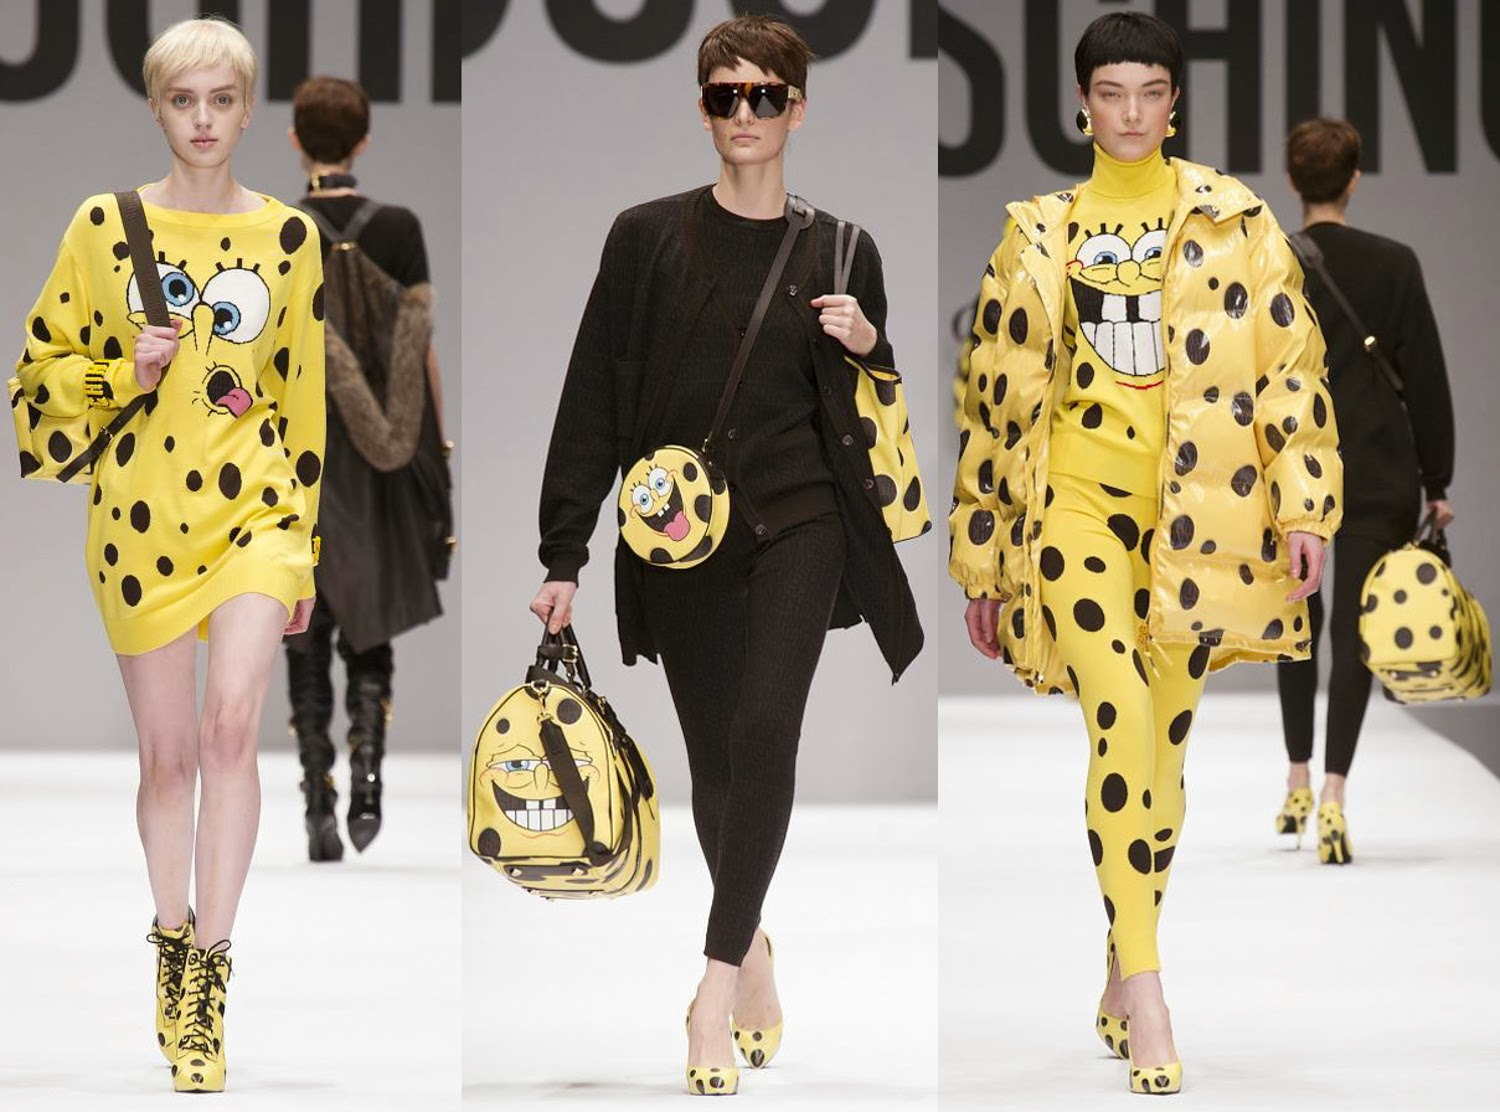 Moschino Autumn Fall Winter 2014 10